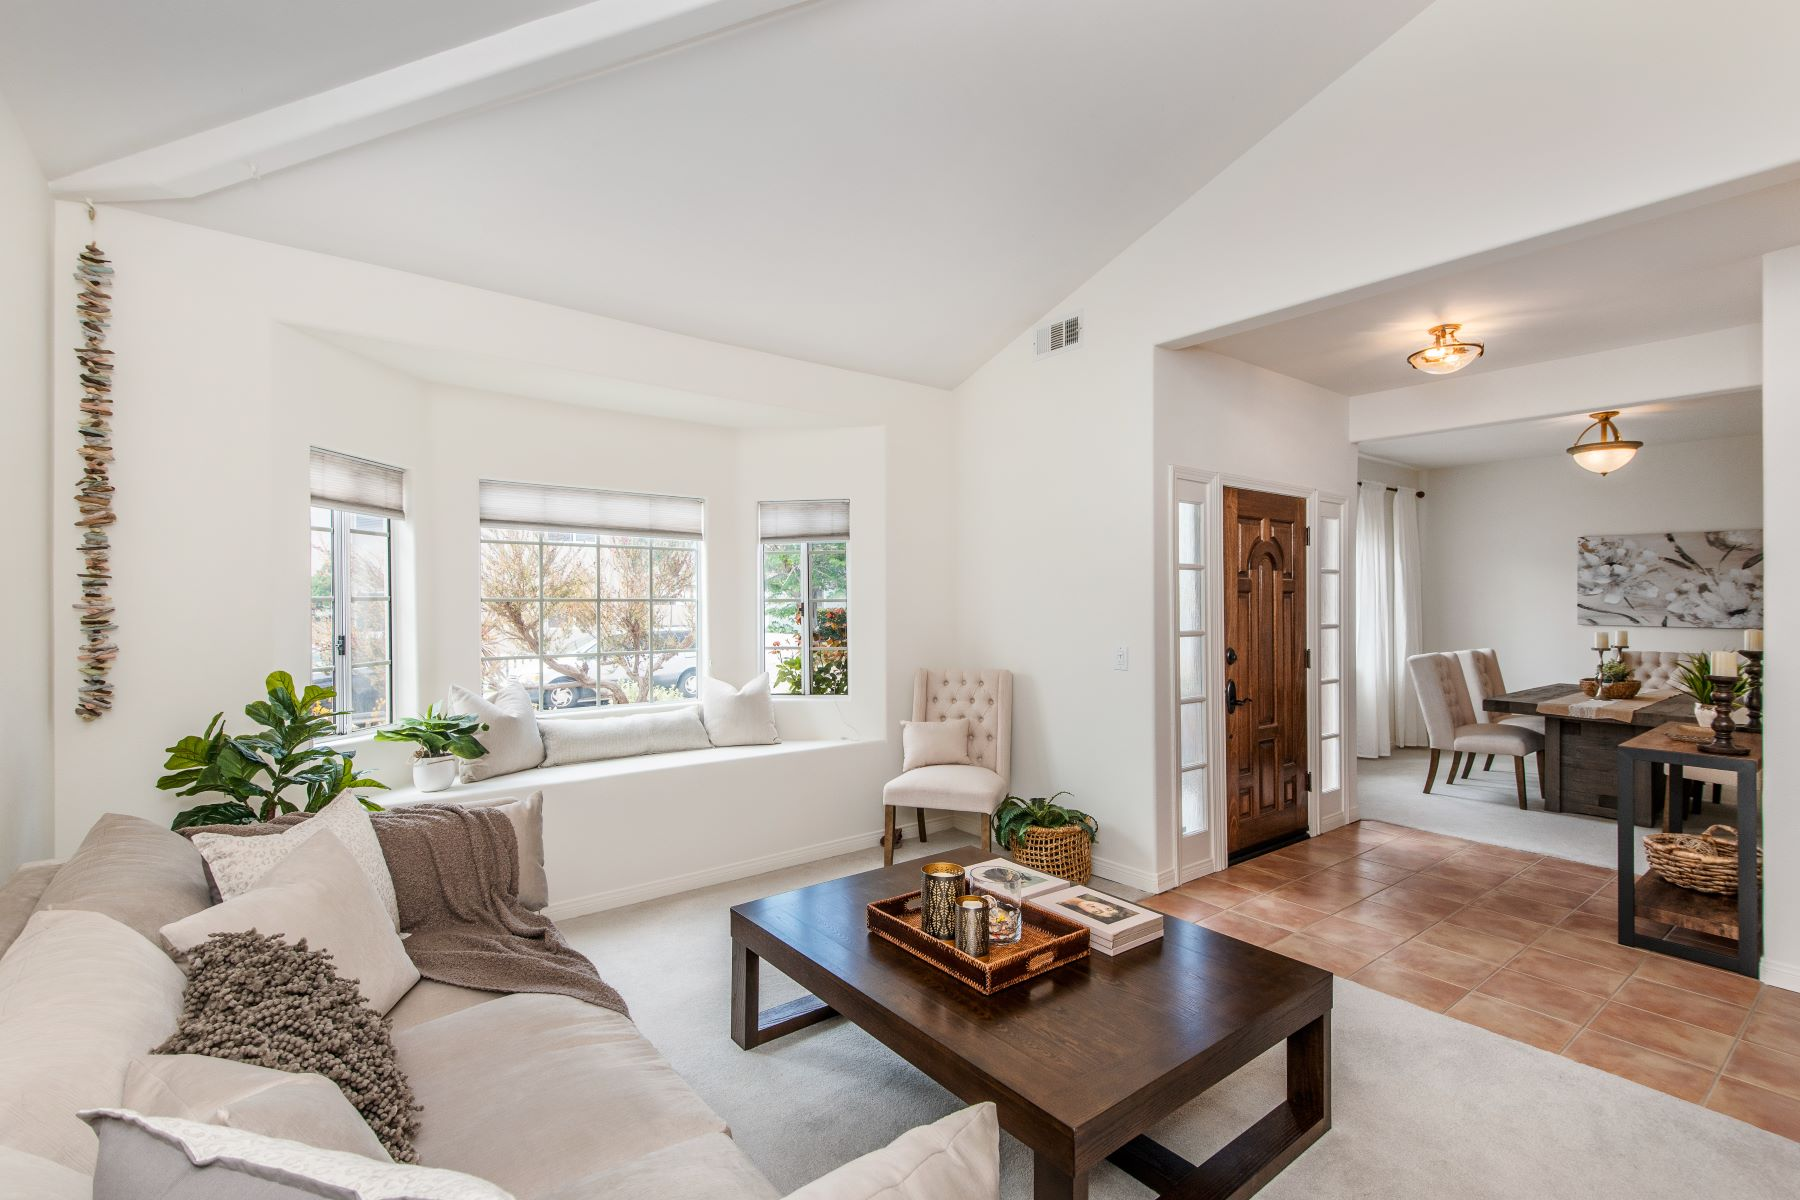 townhouses for Active at 2017 Ruhland Avenue #A, Redondo Beach, CA 90278 2017 Ruhland Avenue #A Redondo Beach, California 90278 United States